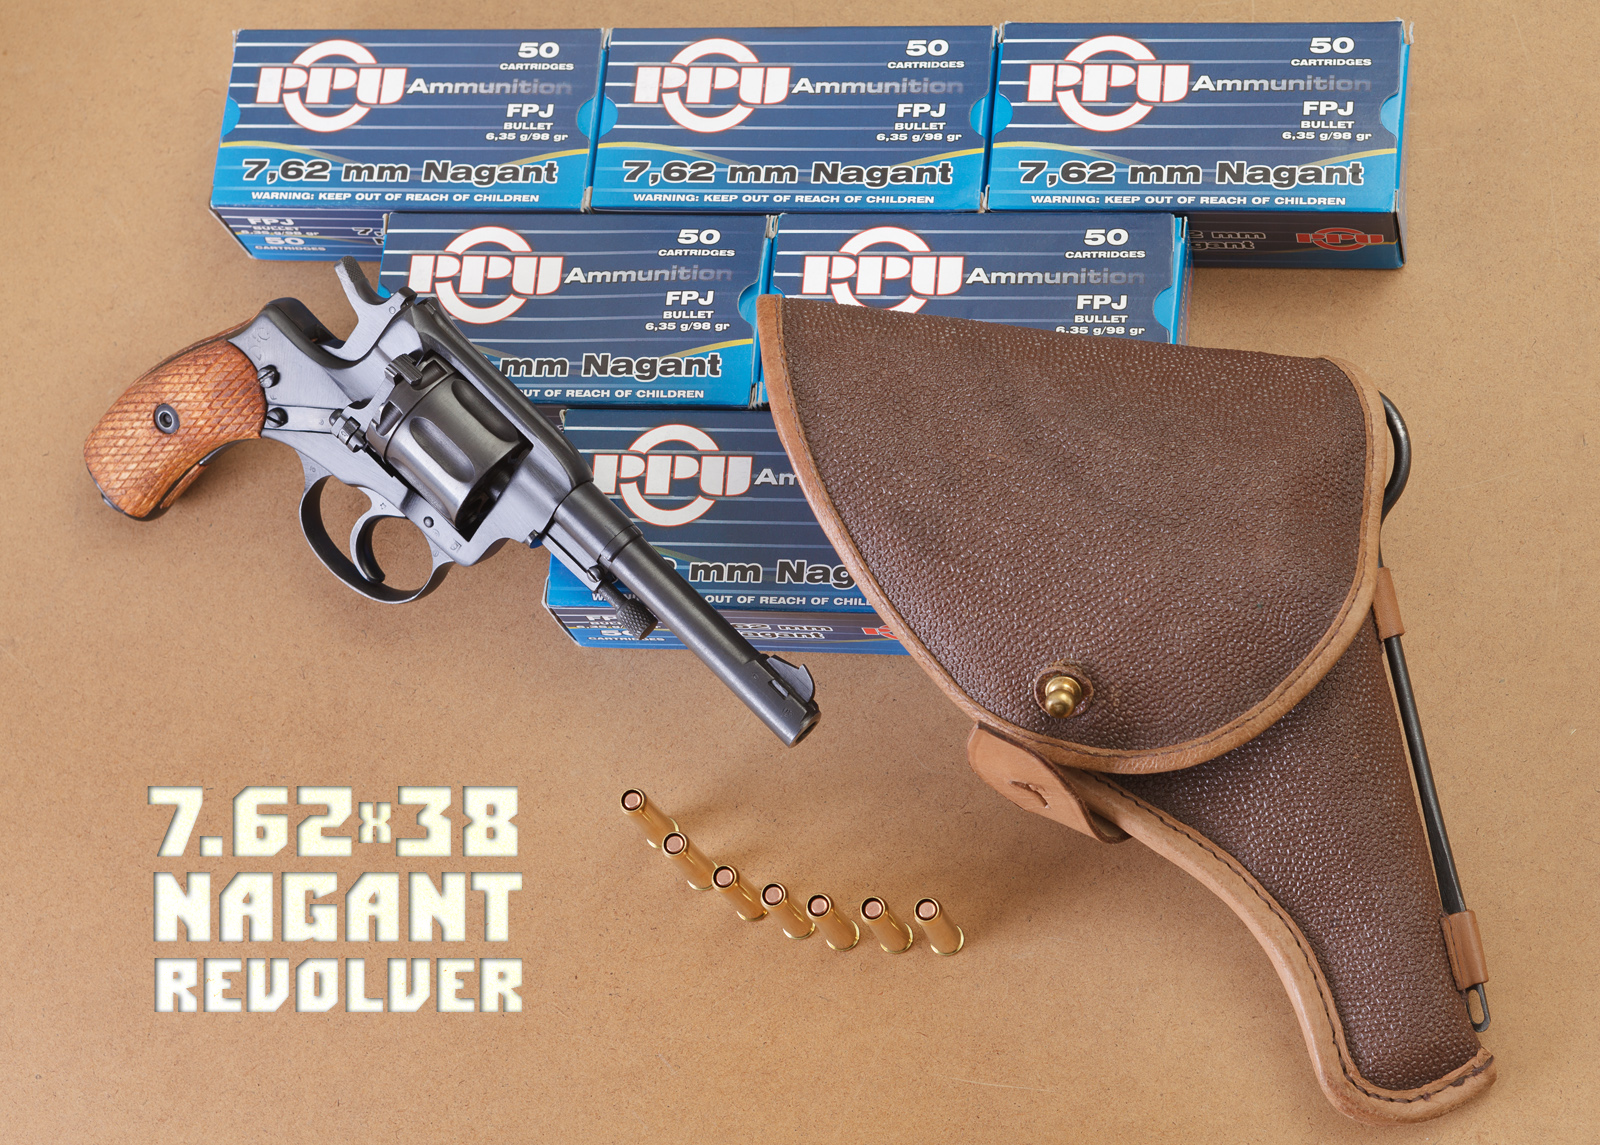 Nagant Revolver in Serious Use